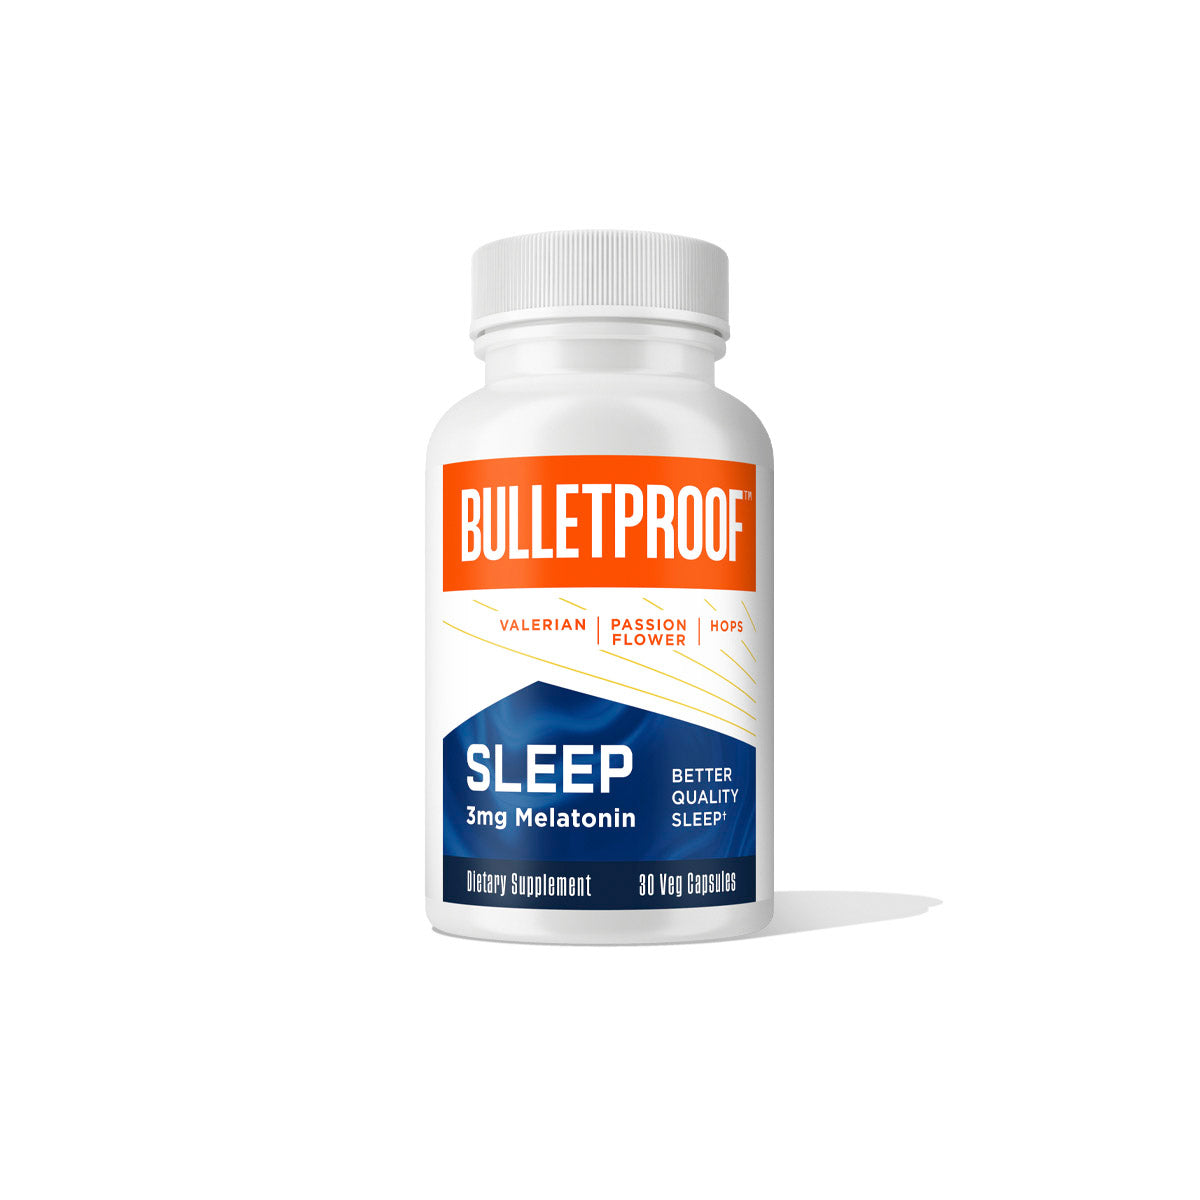 Bulletproof Sleep 3mg Melatonin